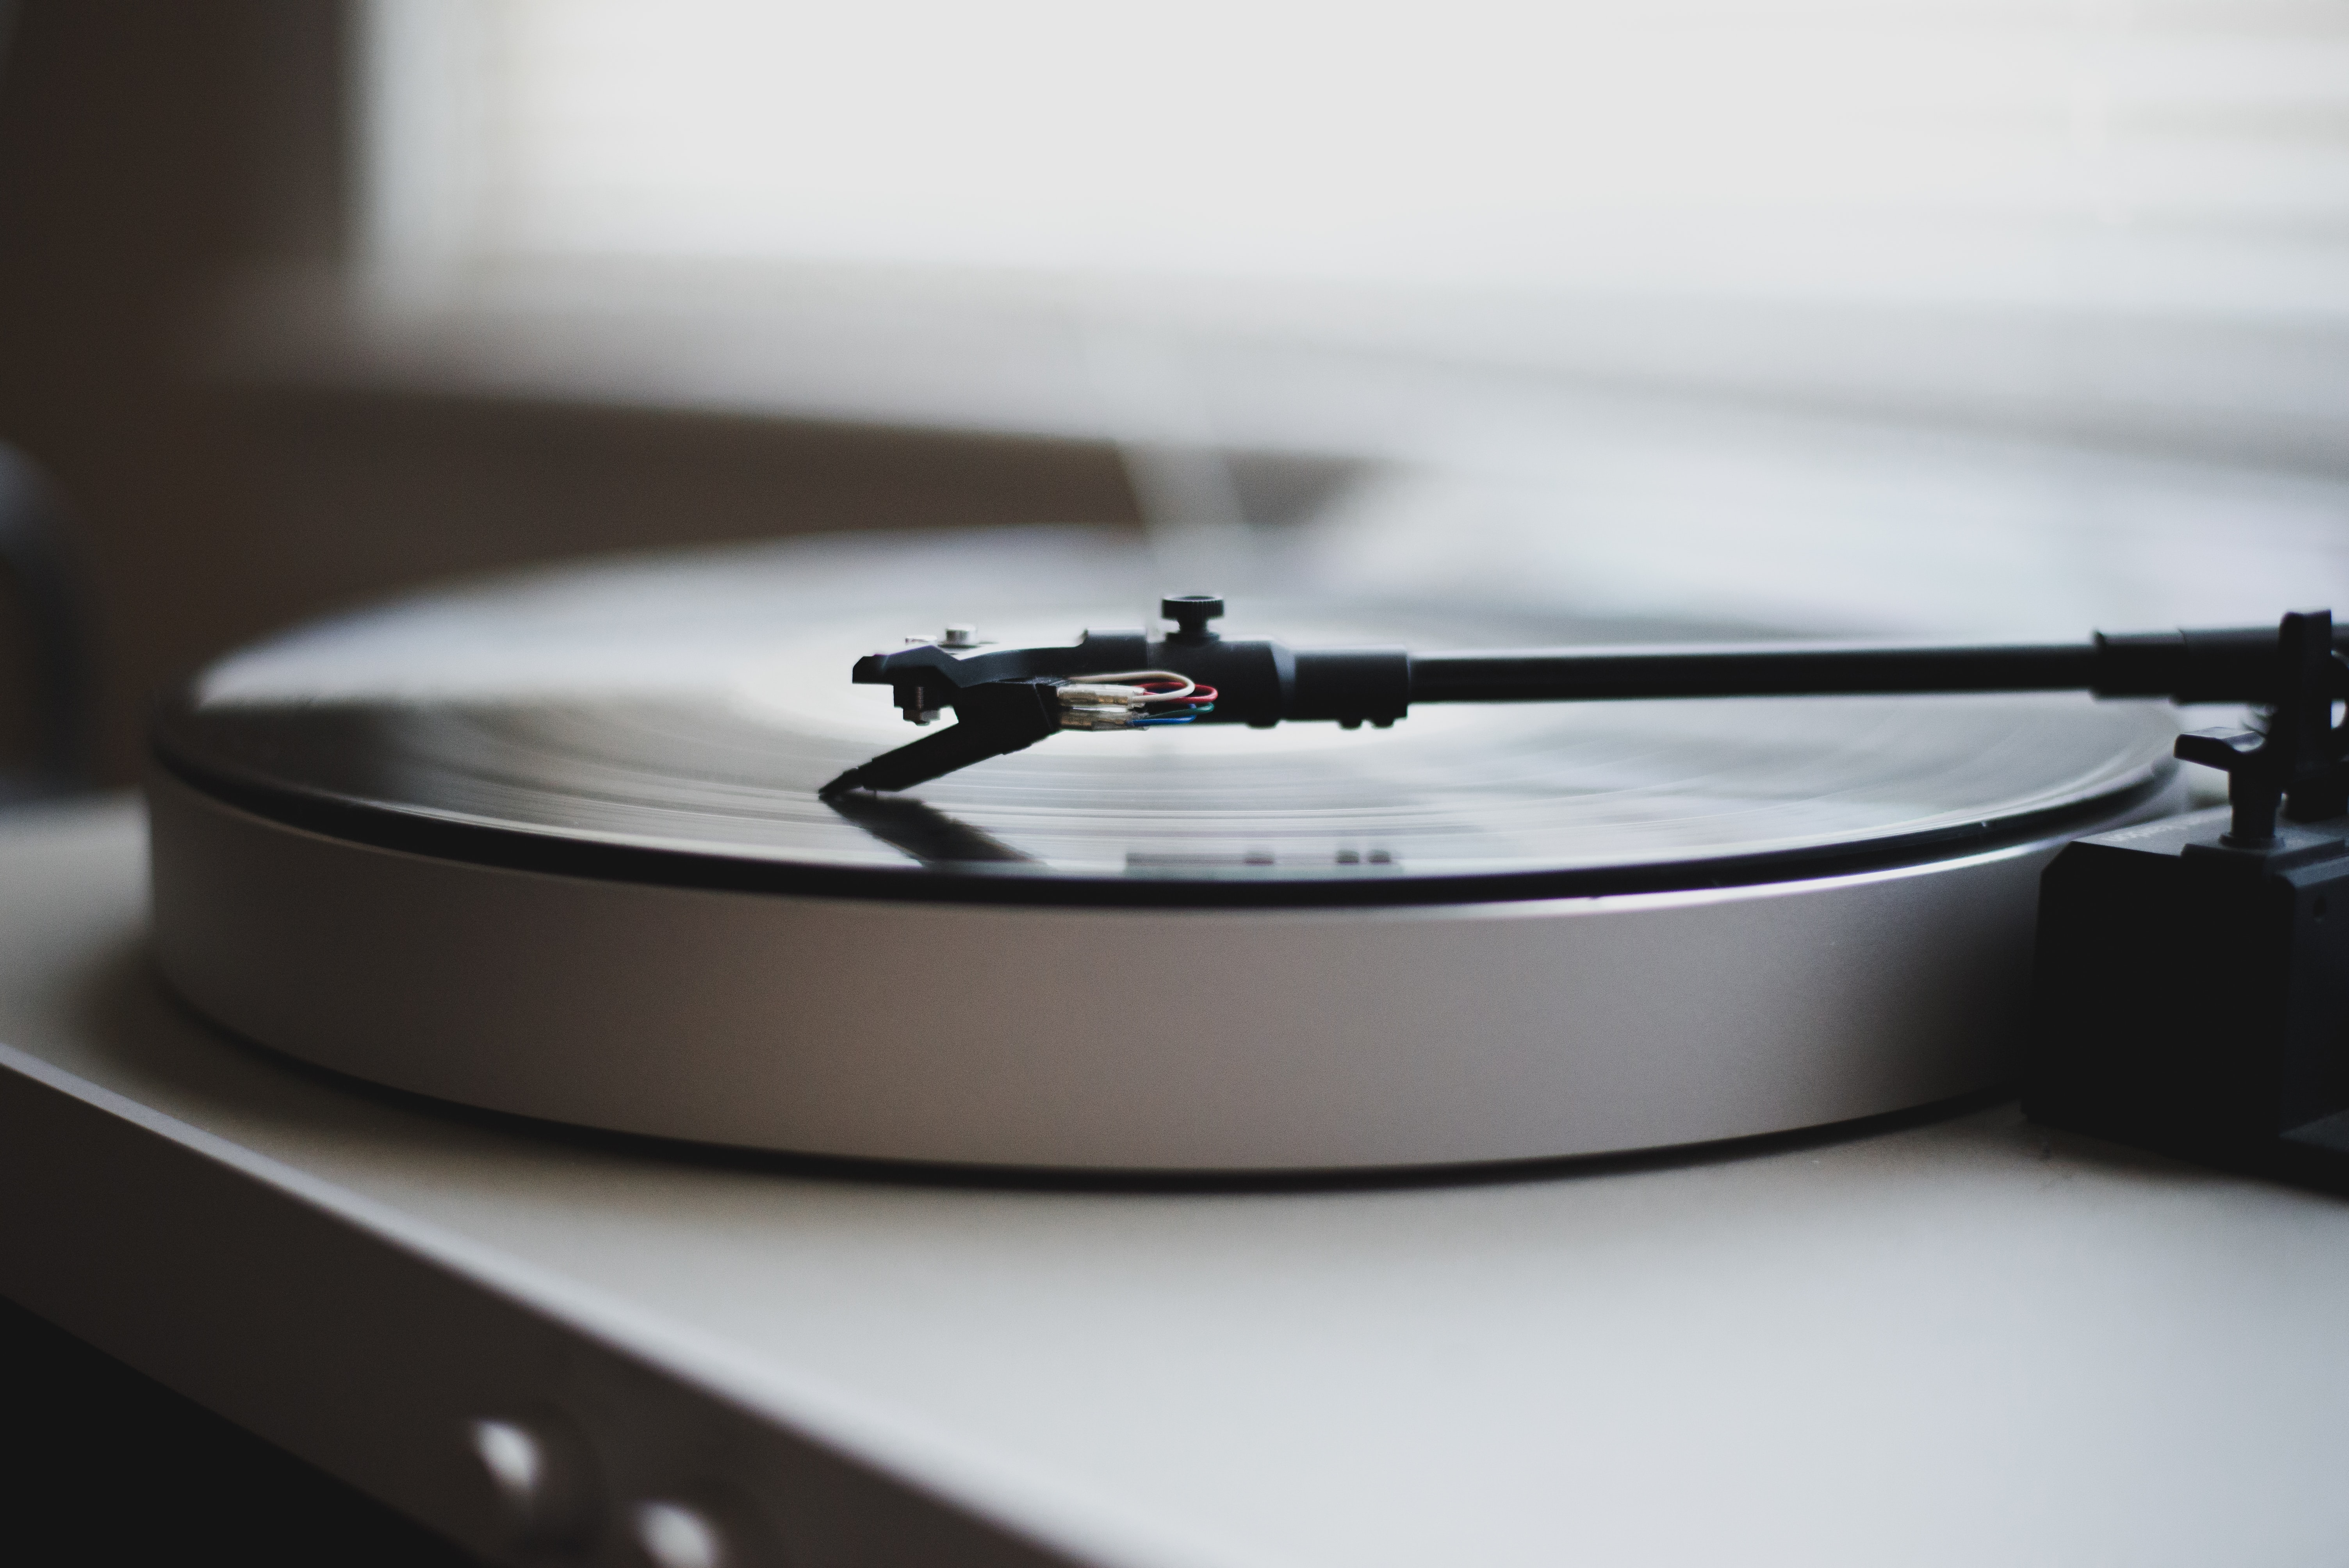 A close-up of a vinyl record played on a record player